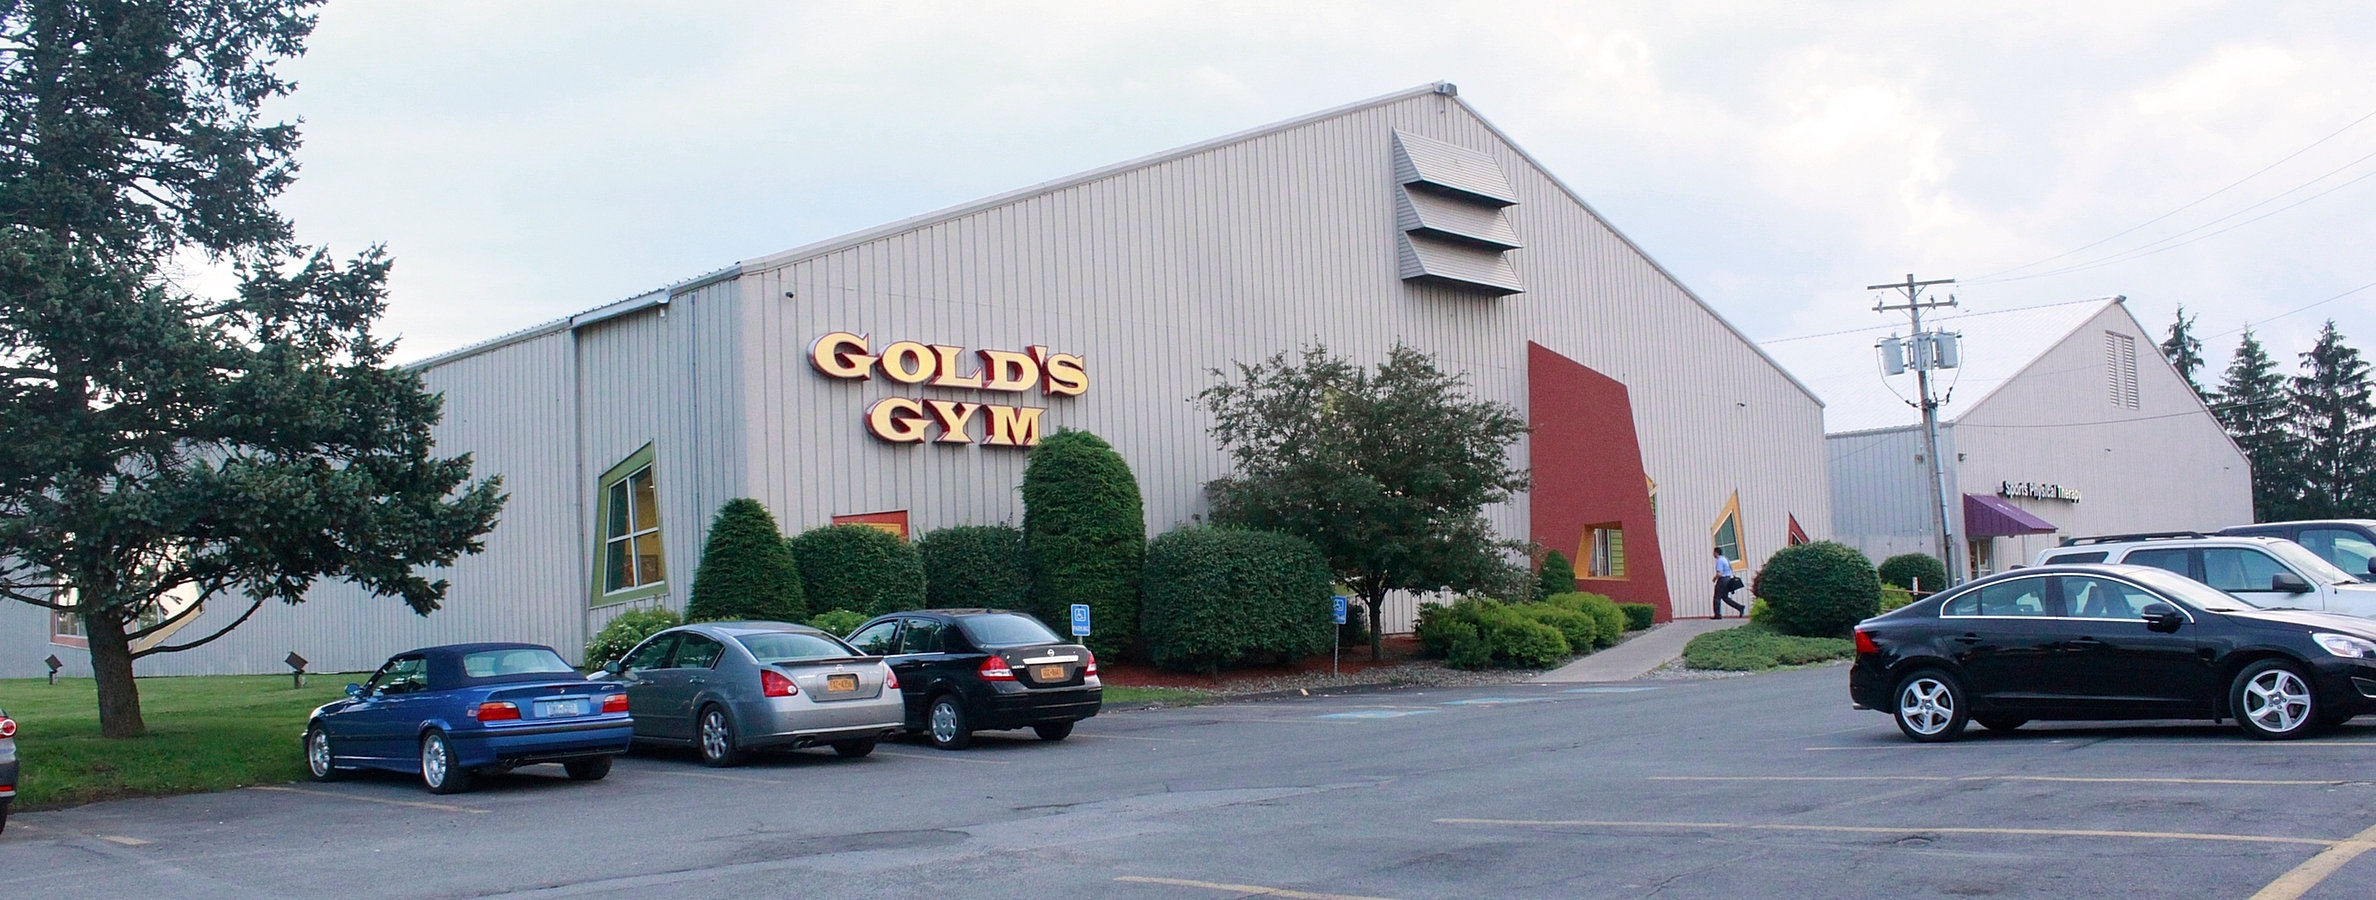 Golds Gym Syracuse | Gold's Gym Liverpool